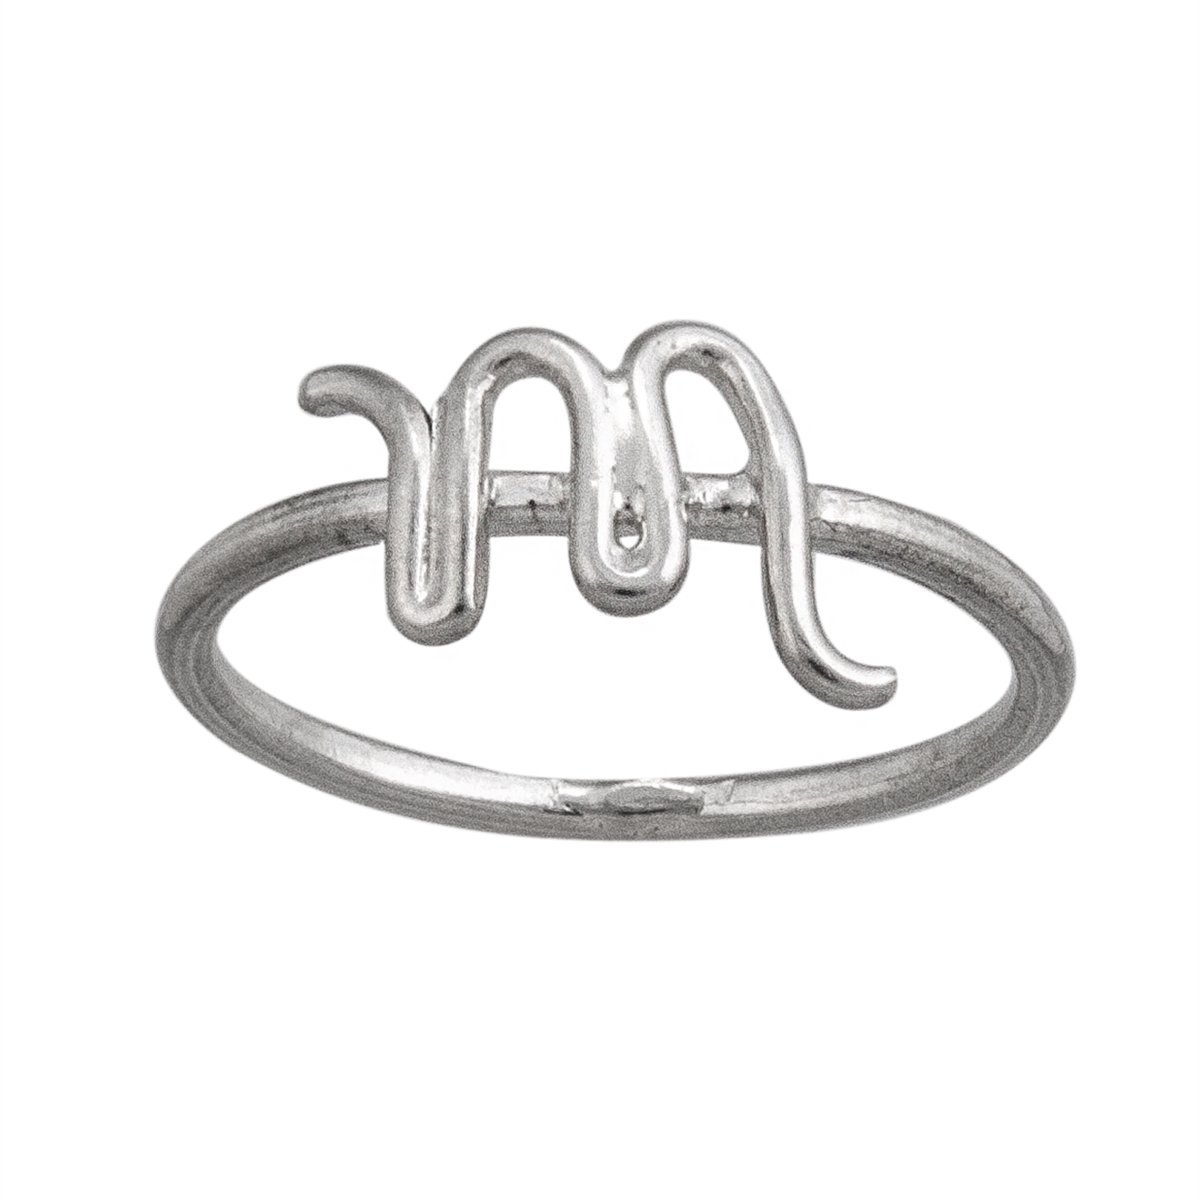 sterling-silver-scorpio-ring - 1 - Charles Albert Inc